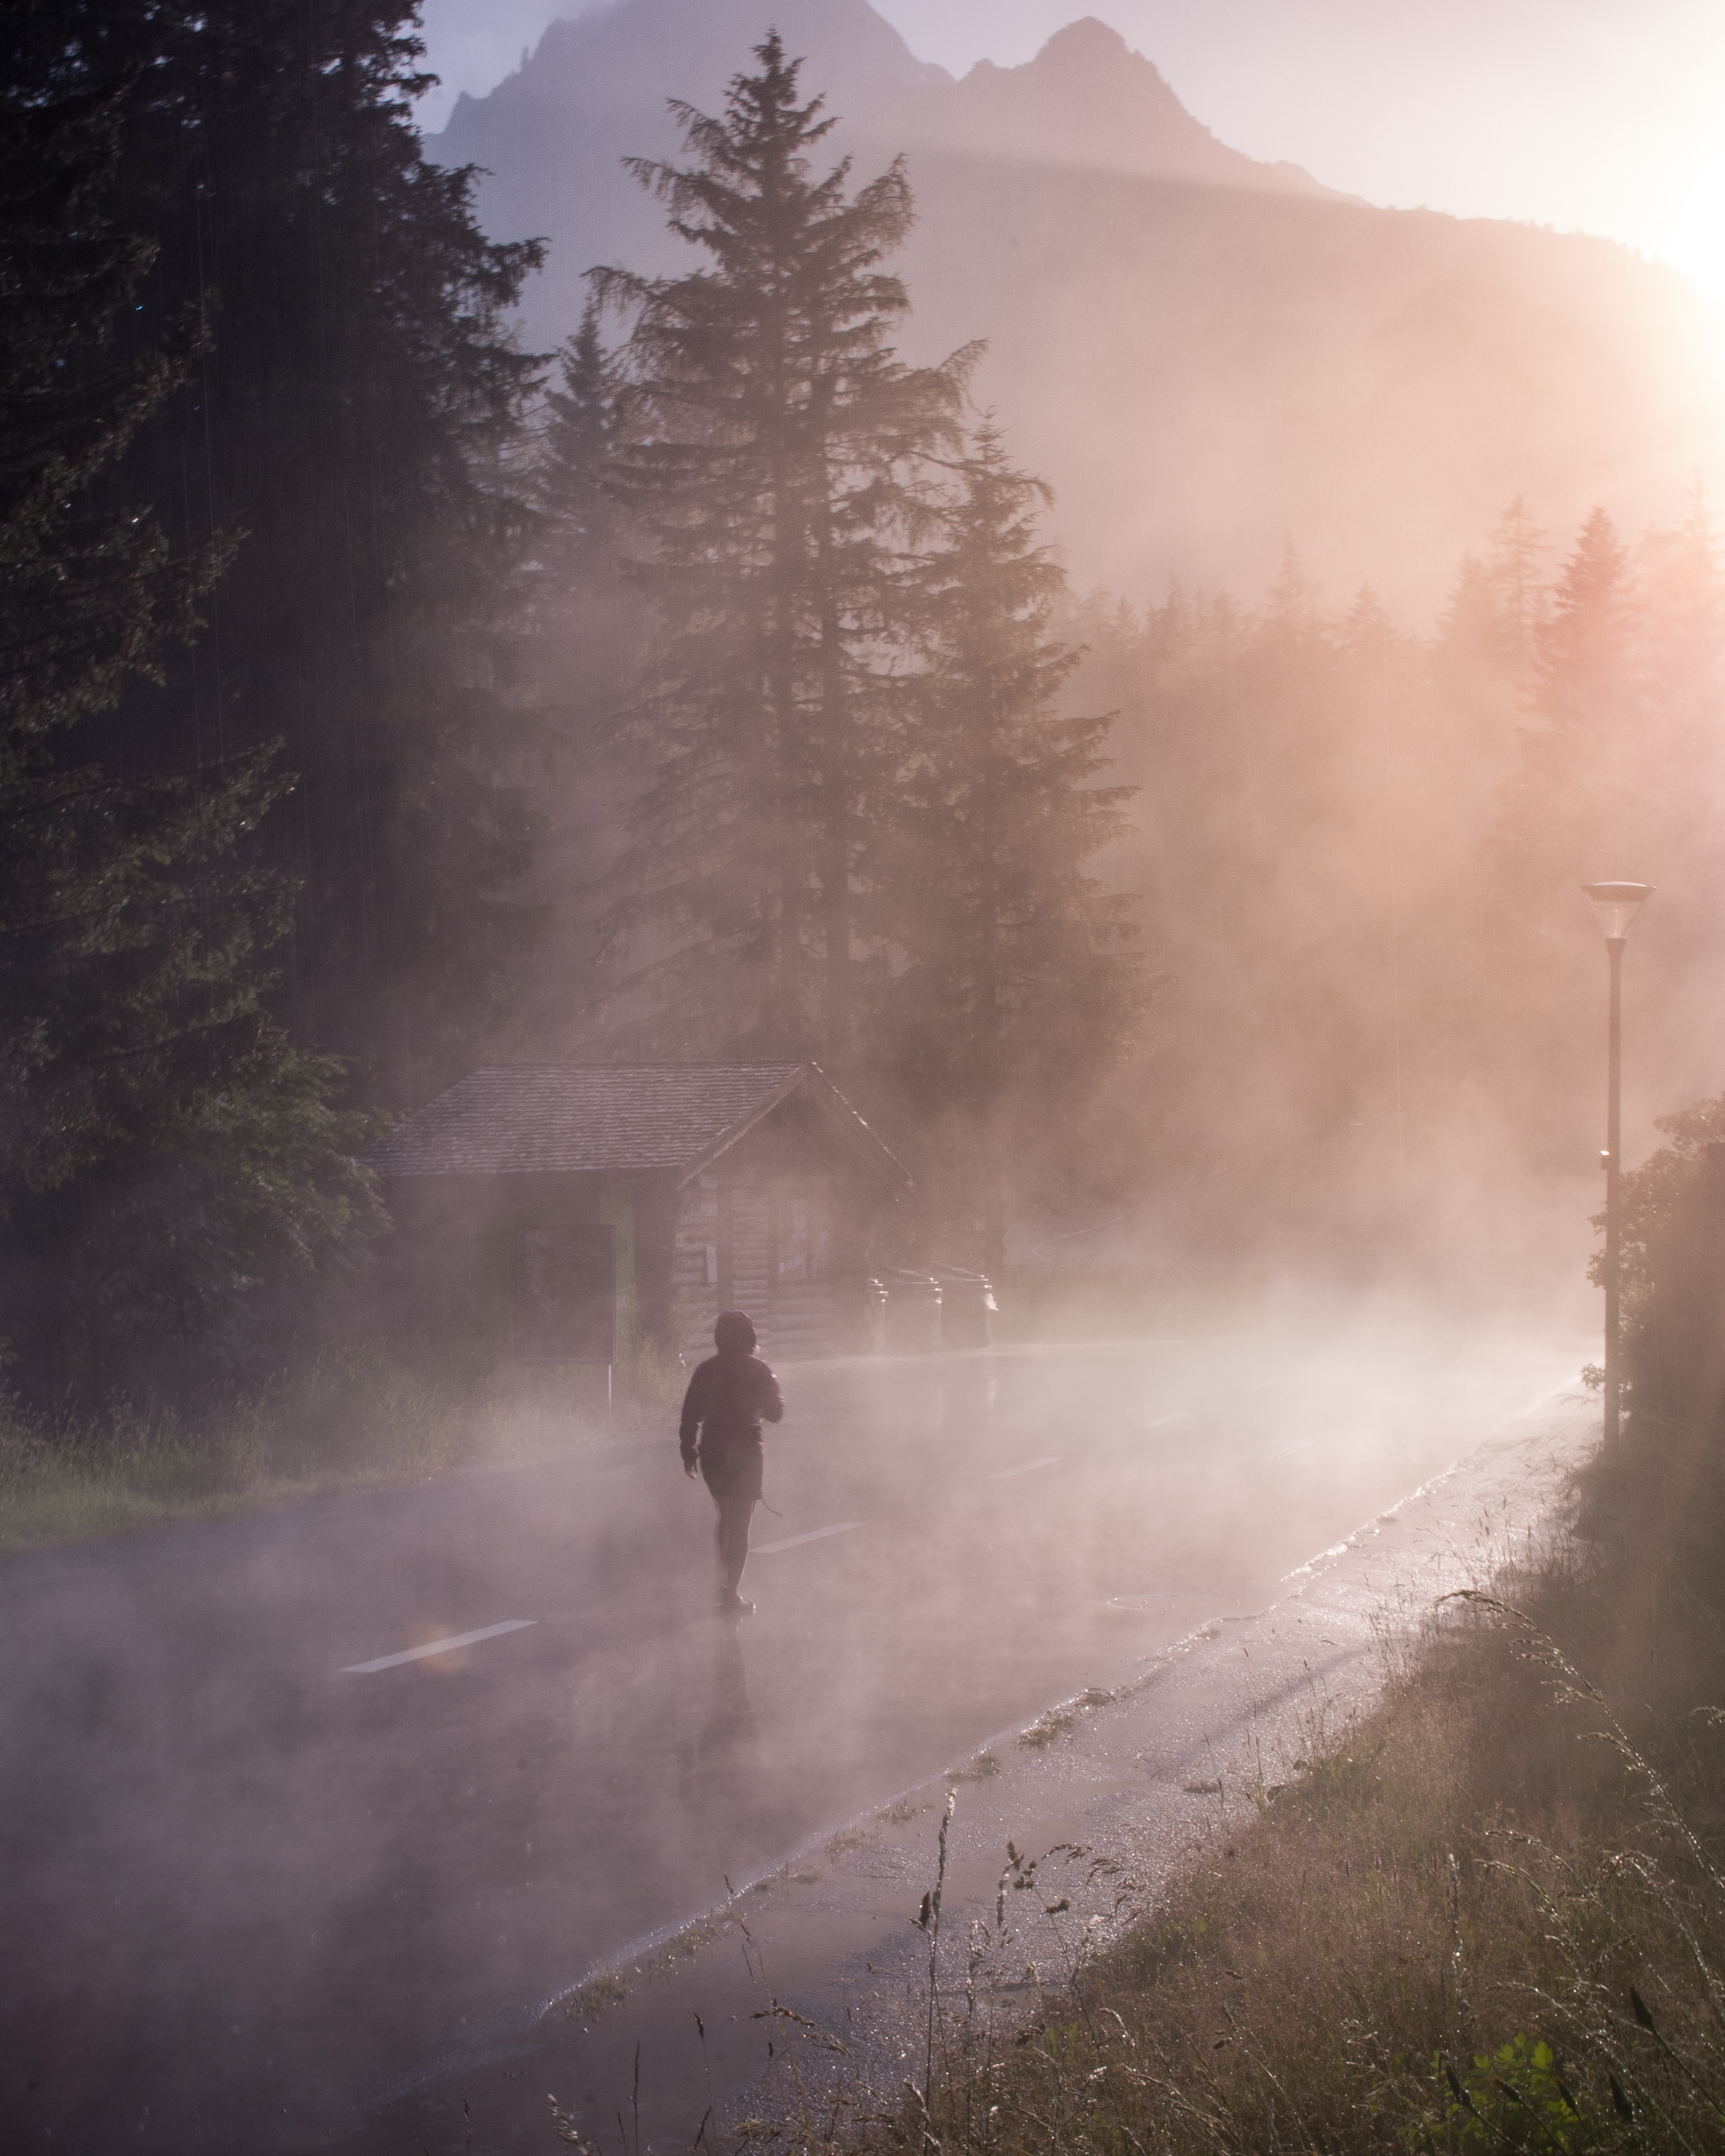 person walking in middle of misty road